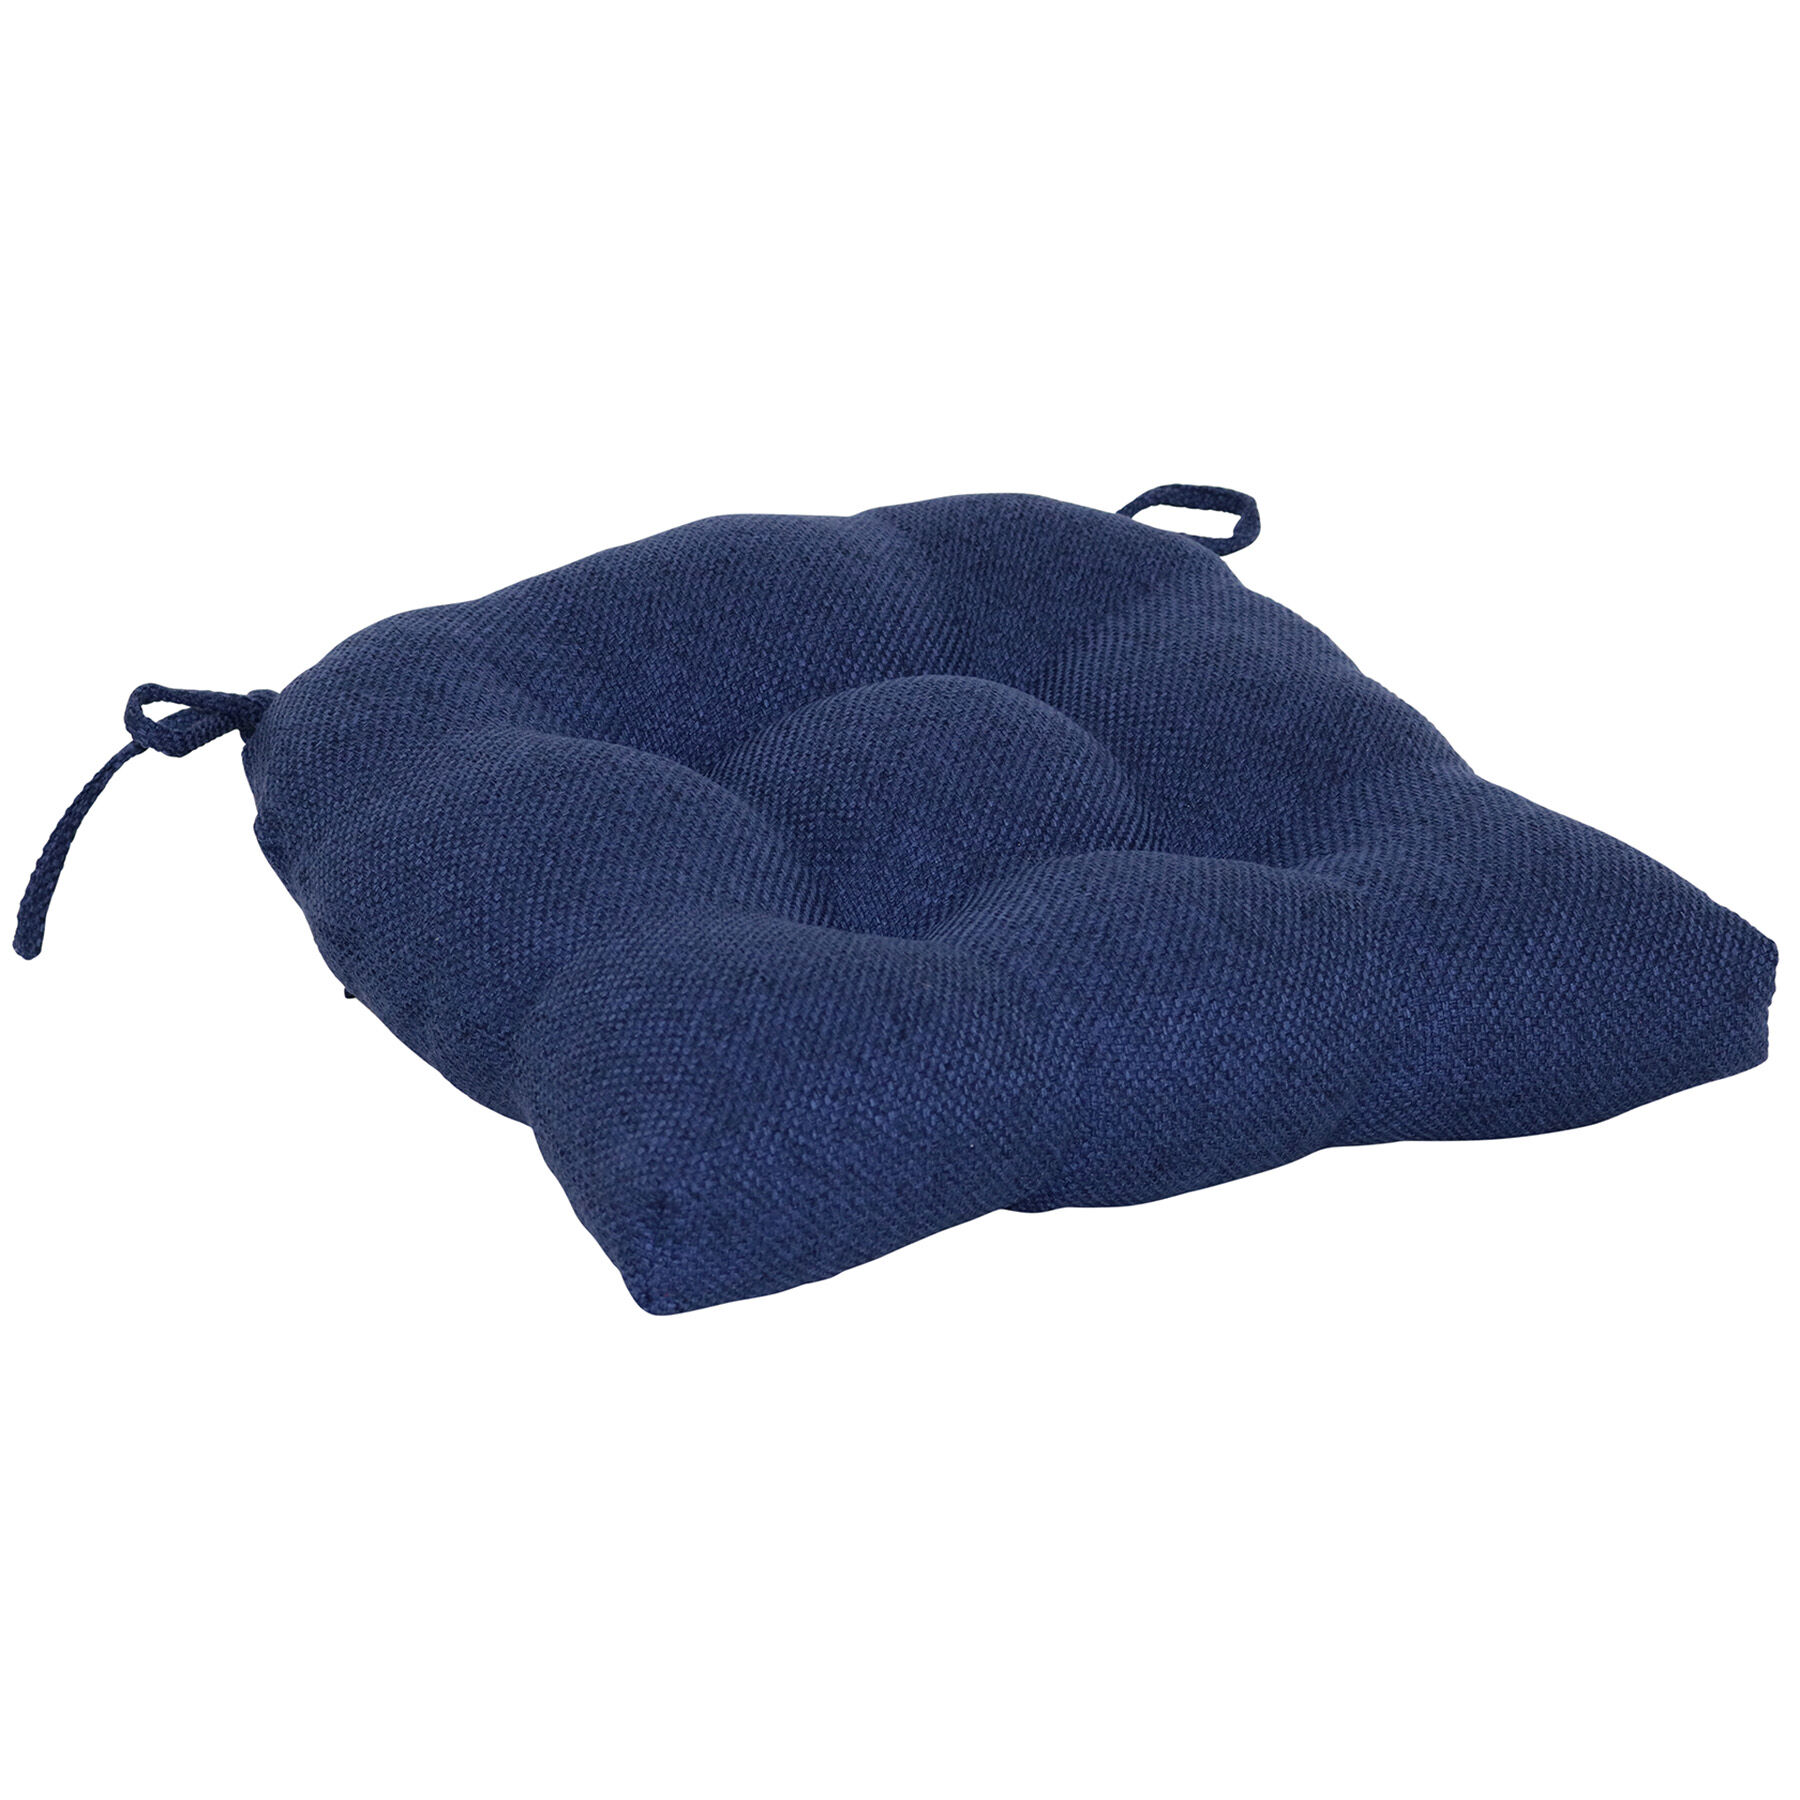 grey chair cushions black office chairs without wheels pads pad collection at home stores indigo